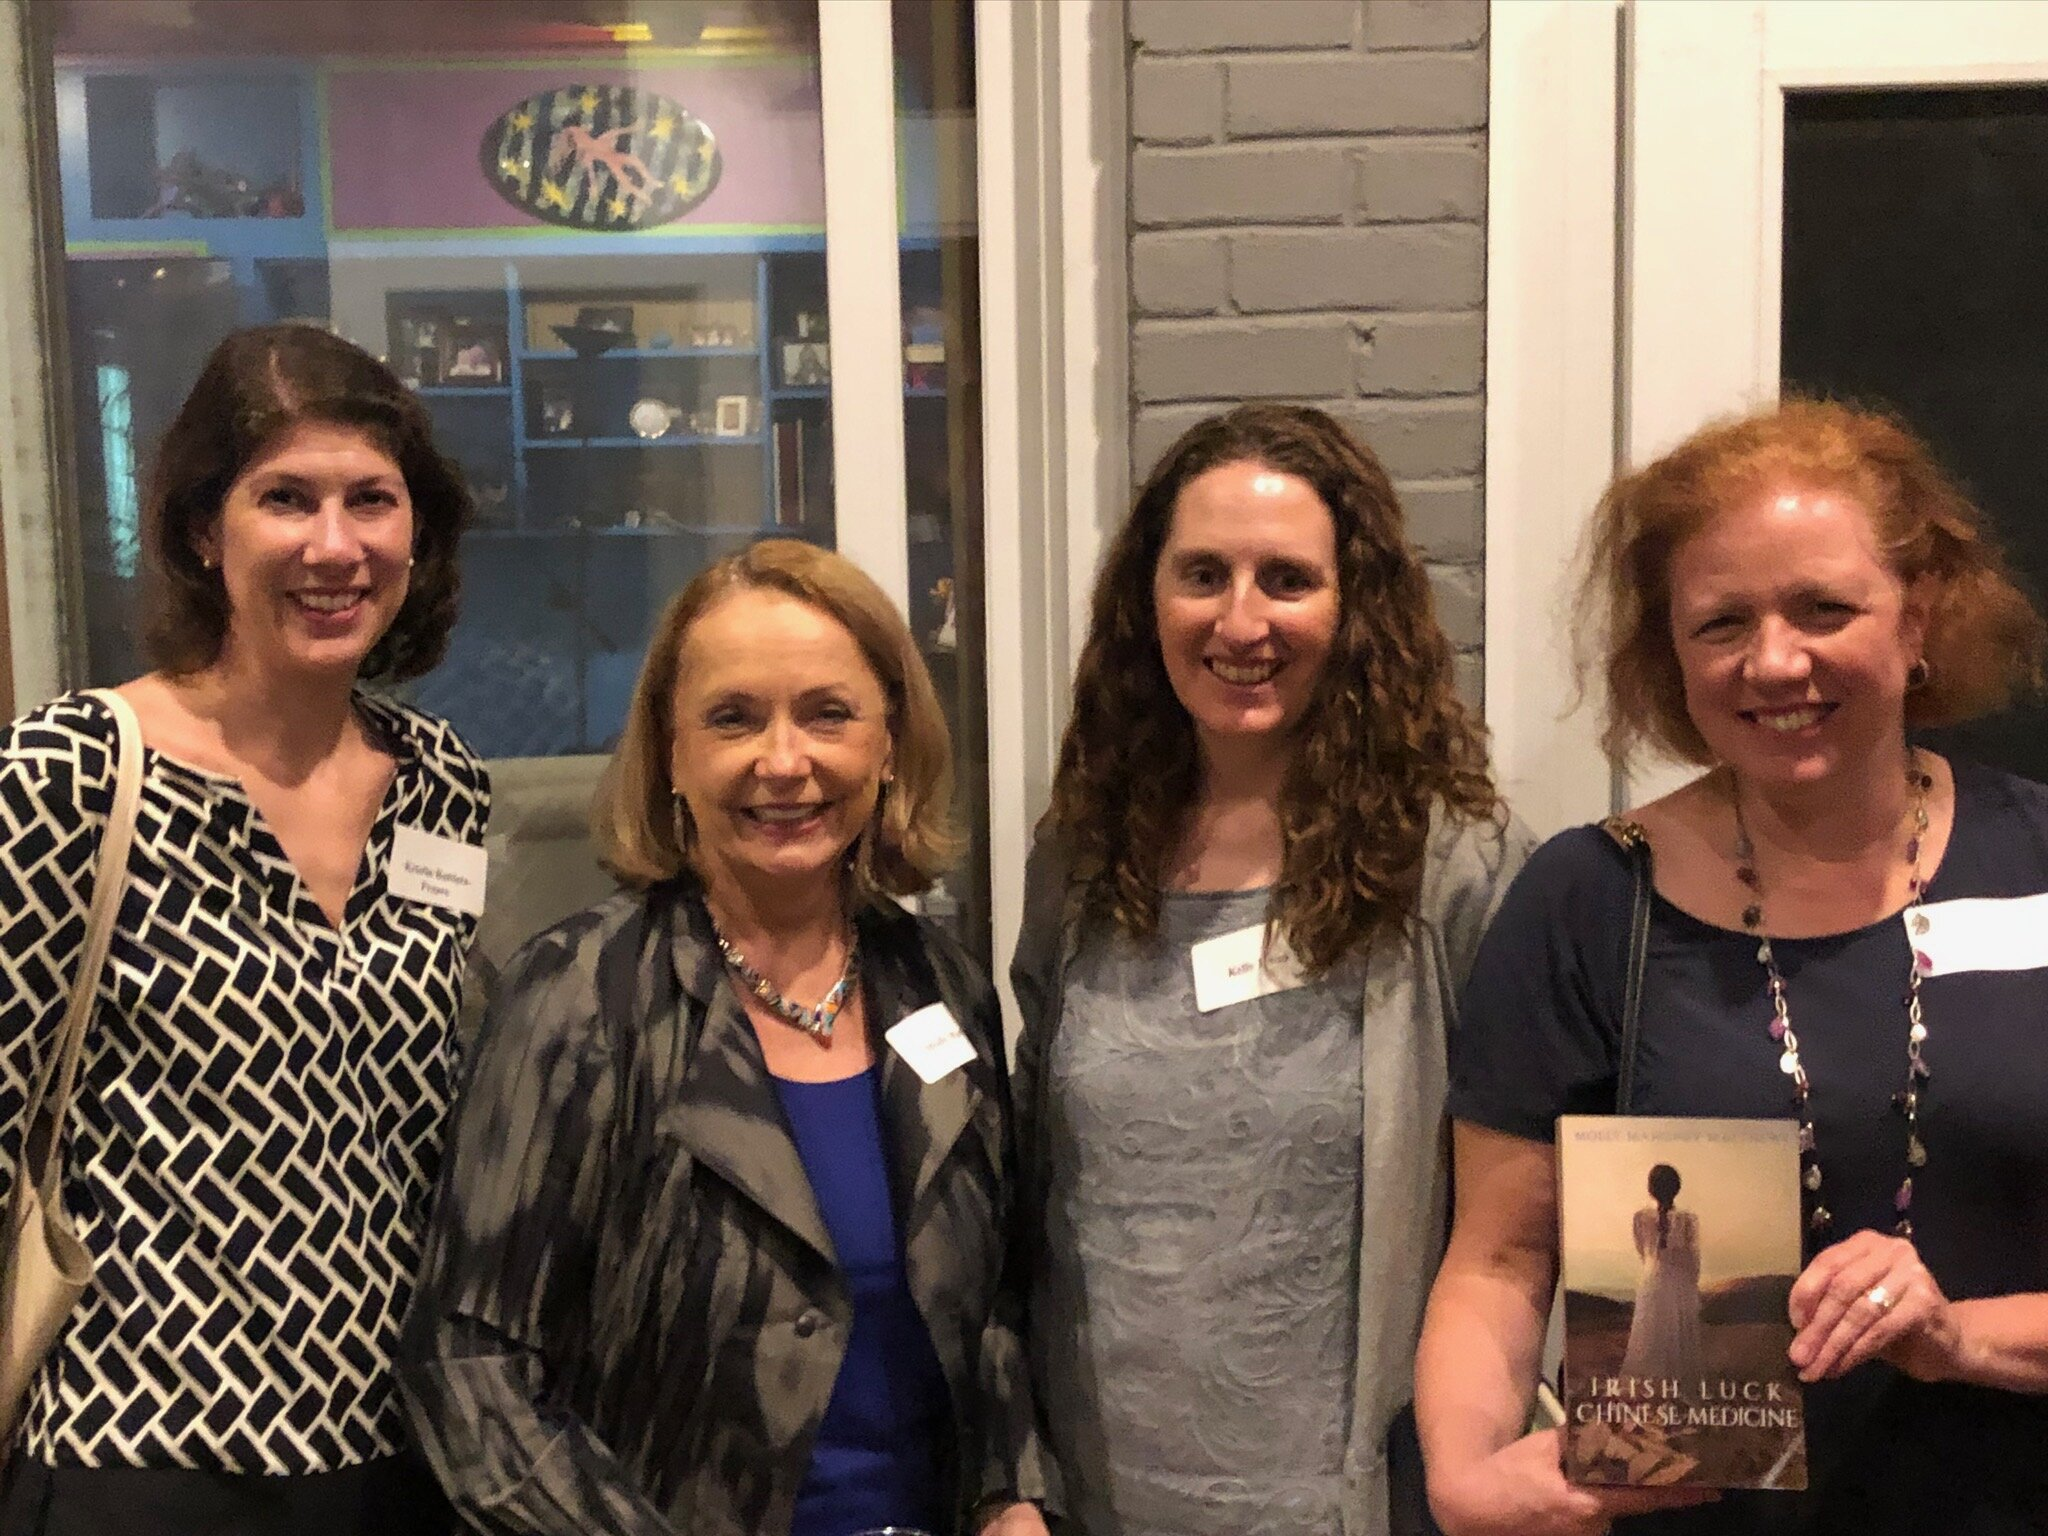 Members of my writing group at a book party for friends and family hosted by Jill and Zoe Scharff.